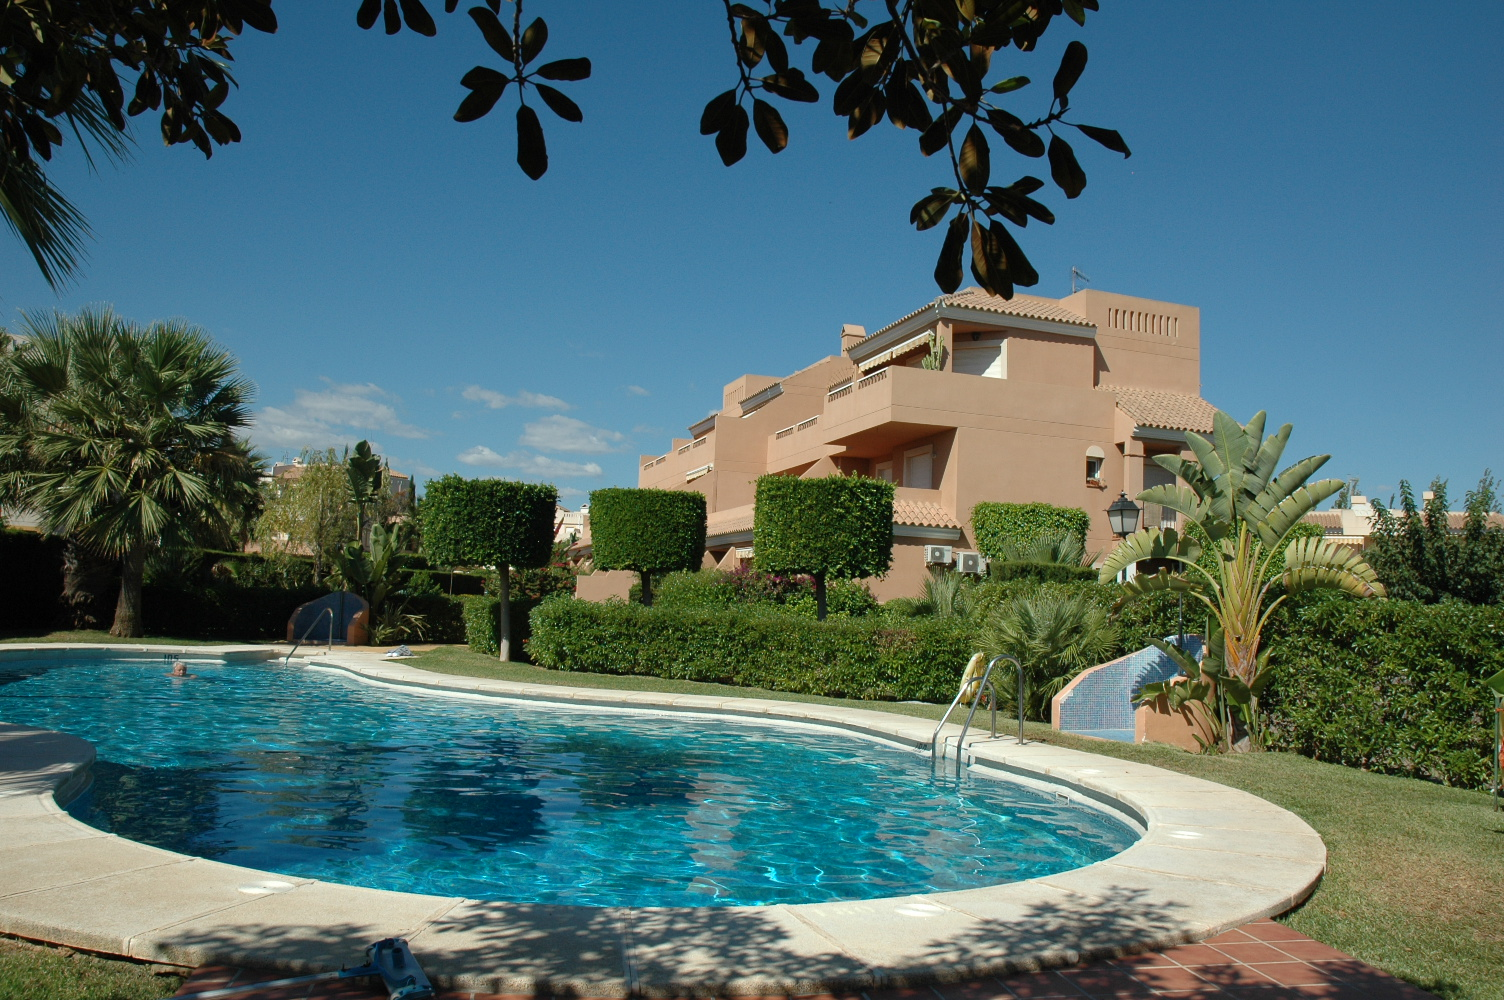 8 Apartments in Naturist Complex - Vera Playa Holiday Rentals